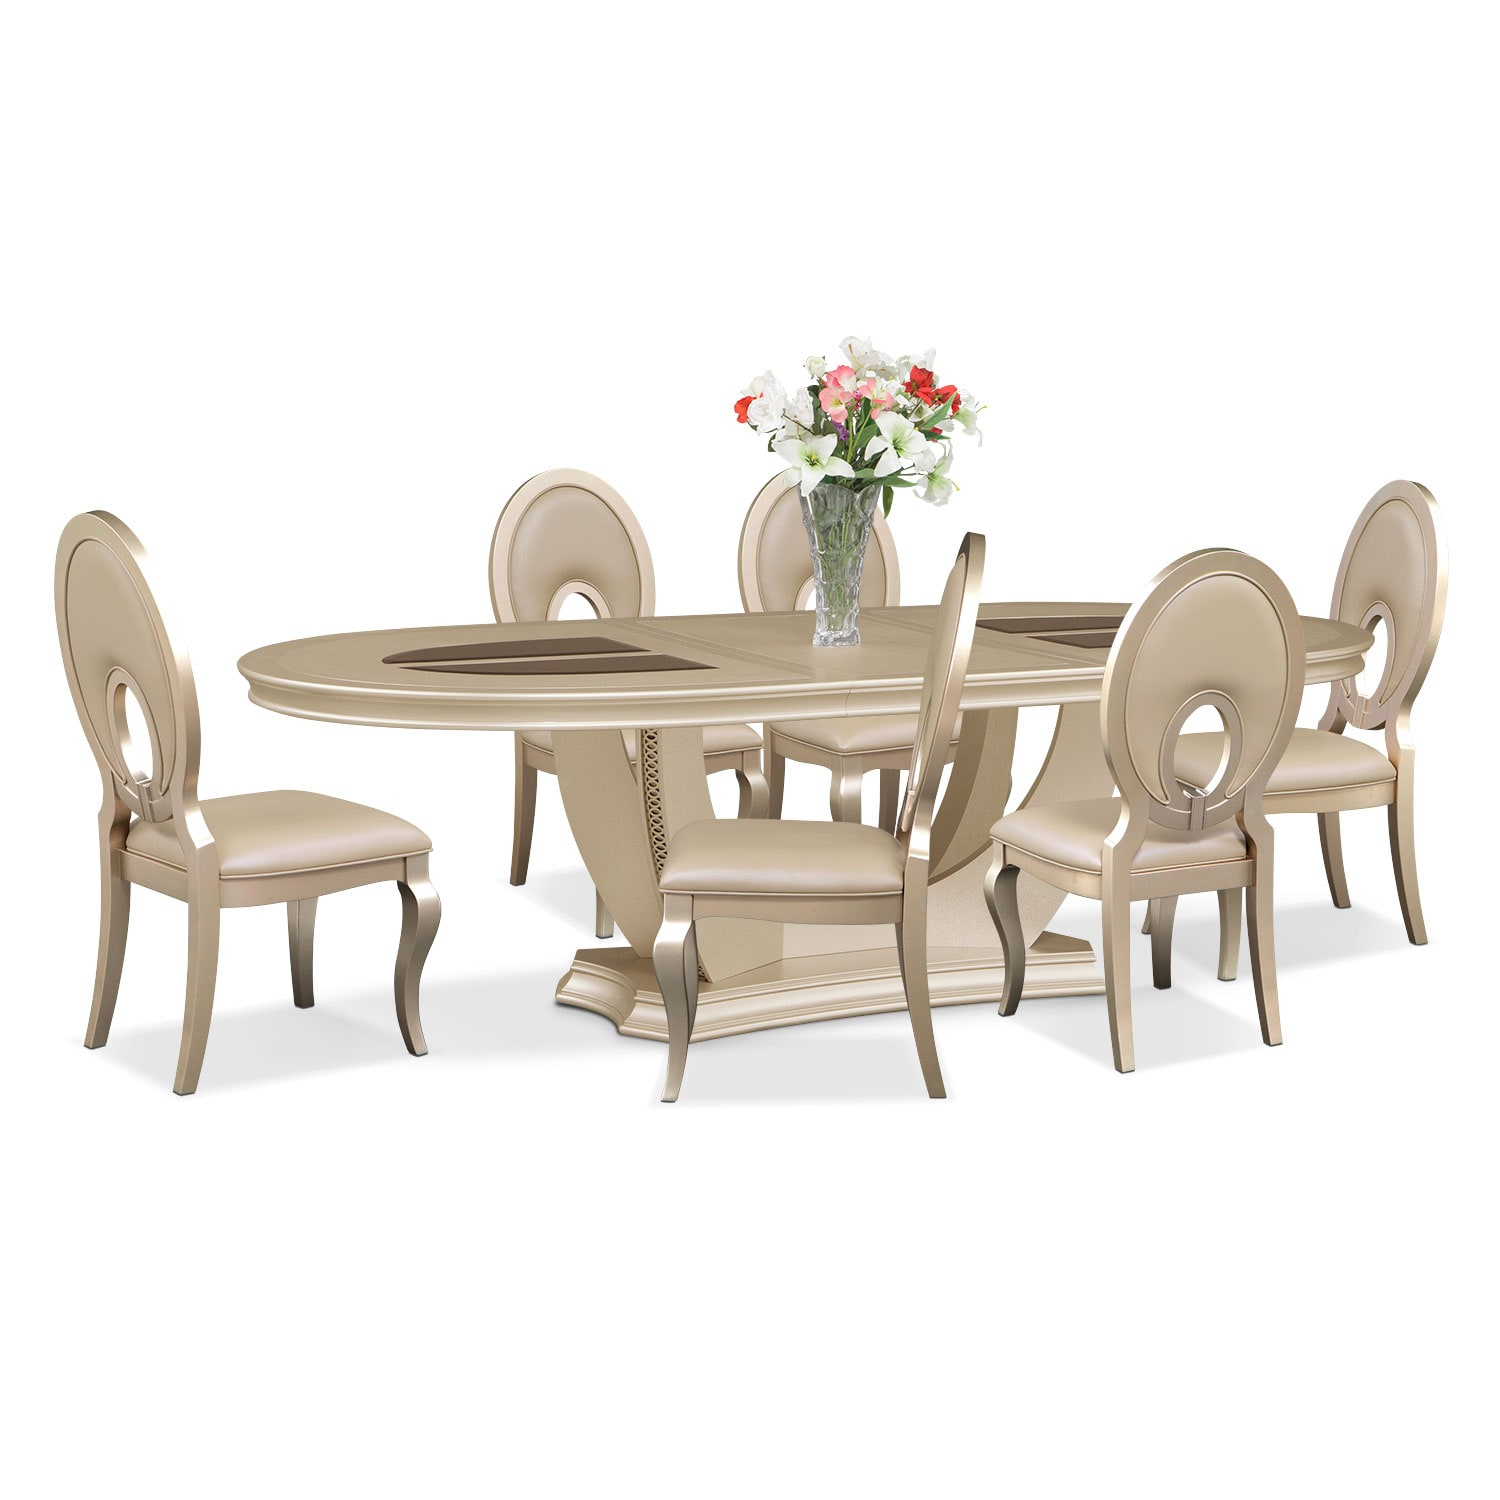 Dining Room Furniture - Allegro 7 Pc. Dining Room - Oval